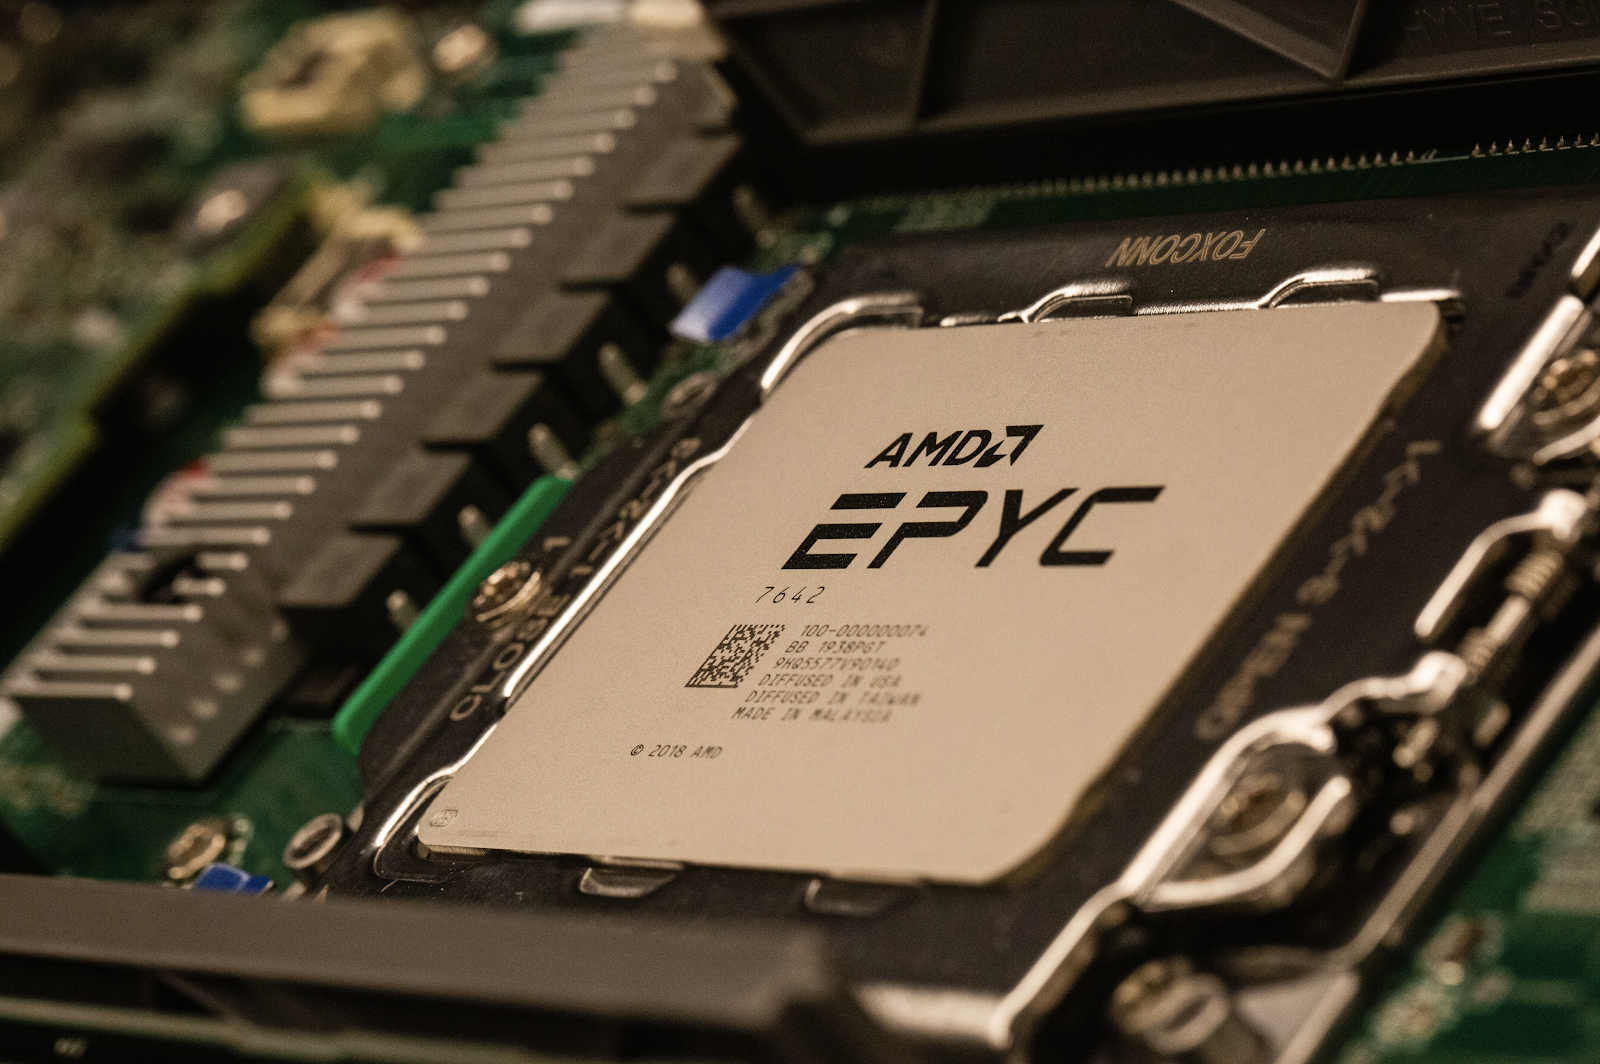 Technical Details of Why Cloudflare Chose AMD EPYC for Gen X Servers